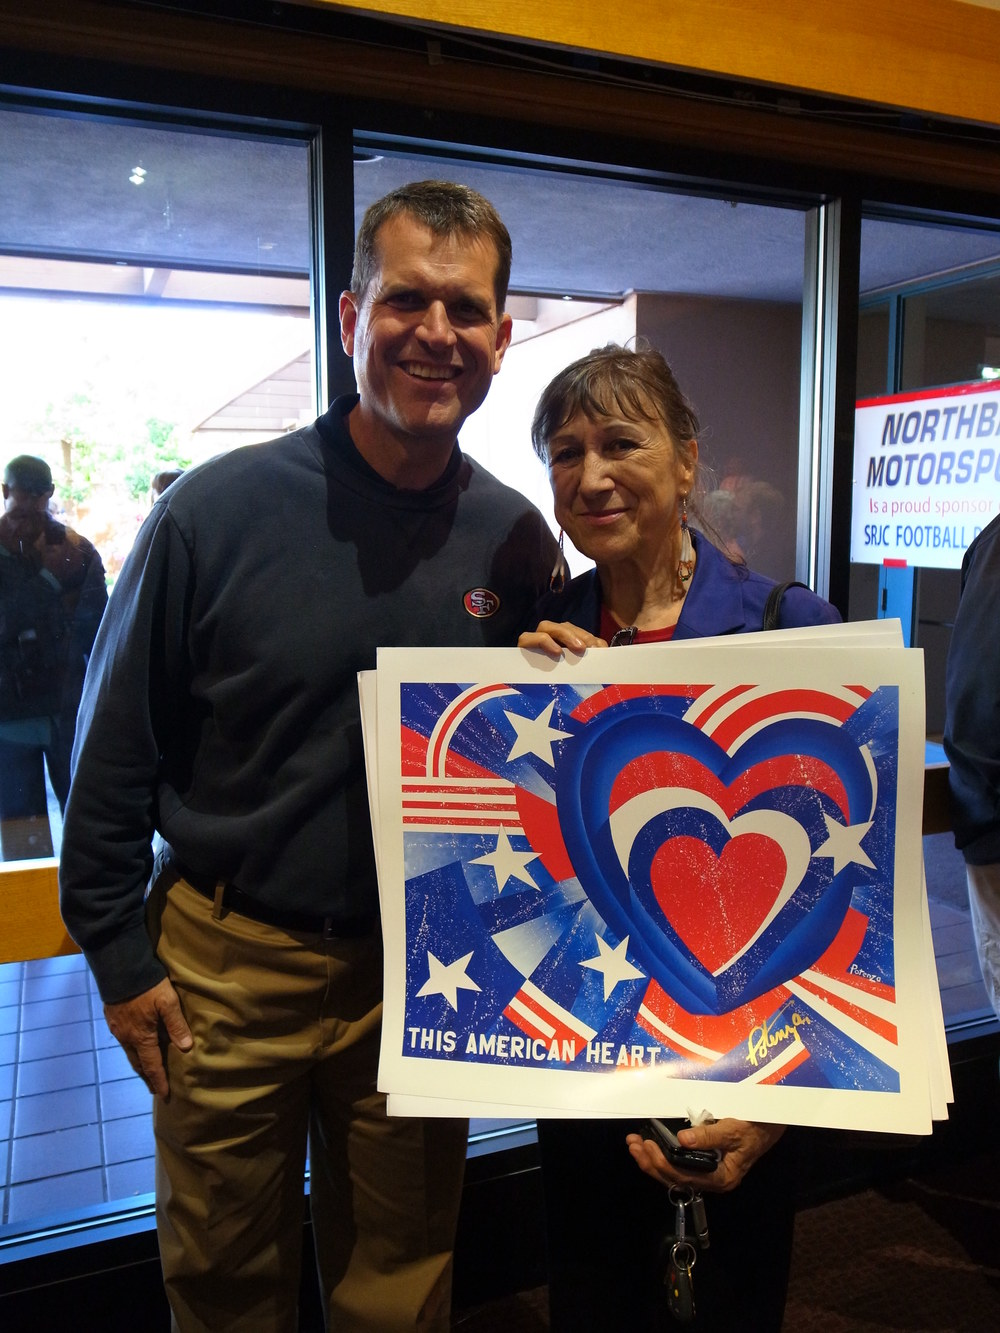 Jim Harbaugh, This American Heart